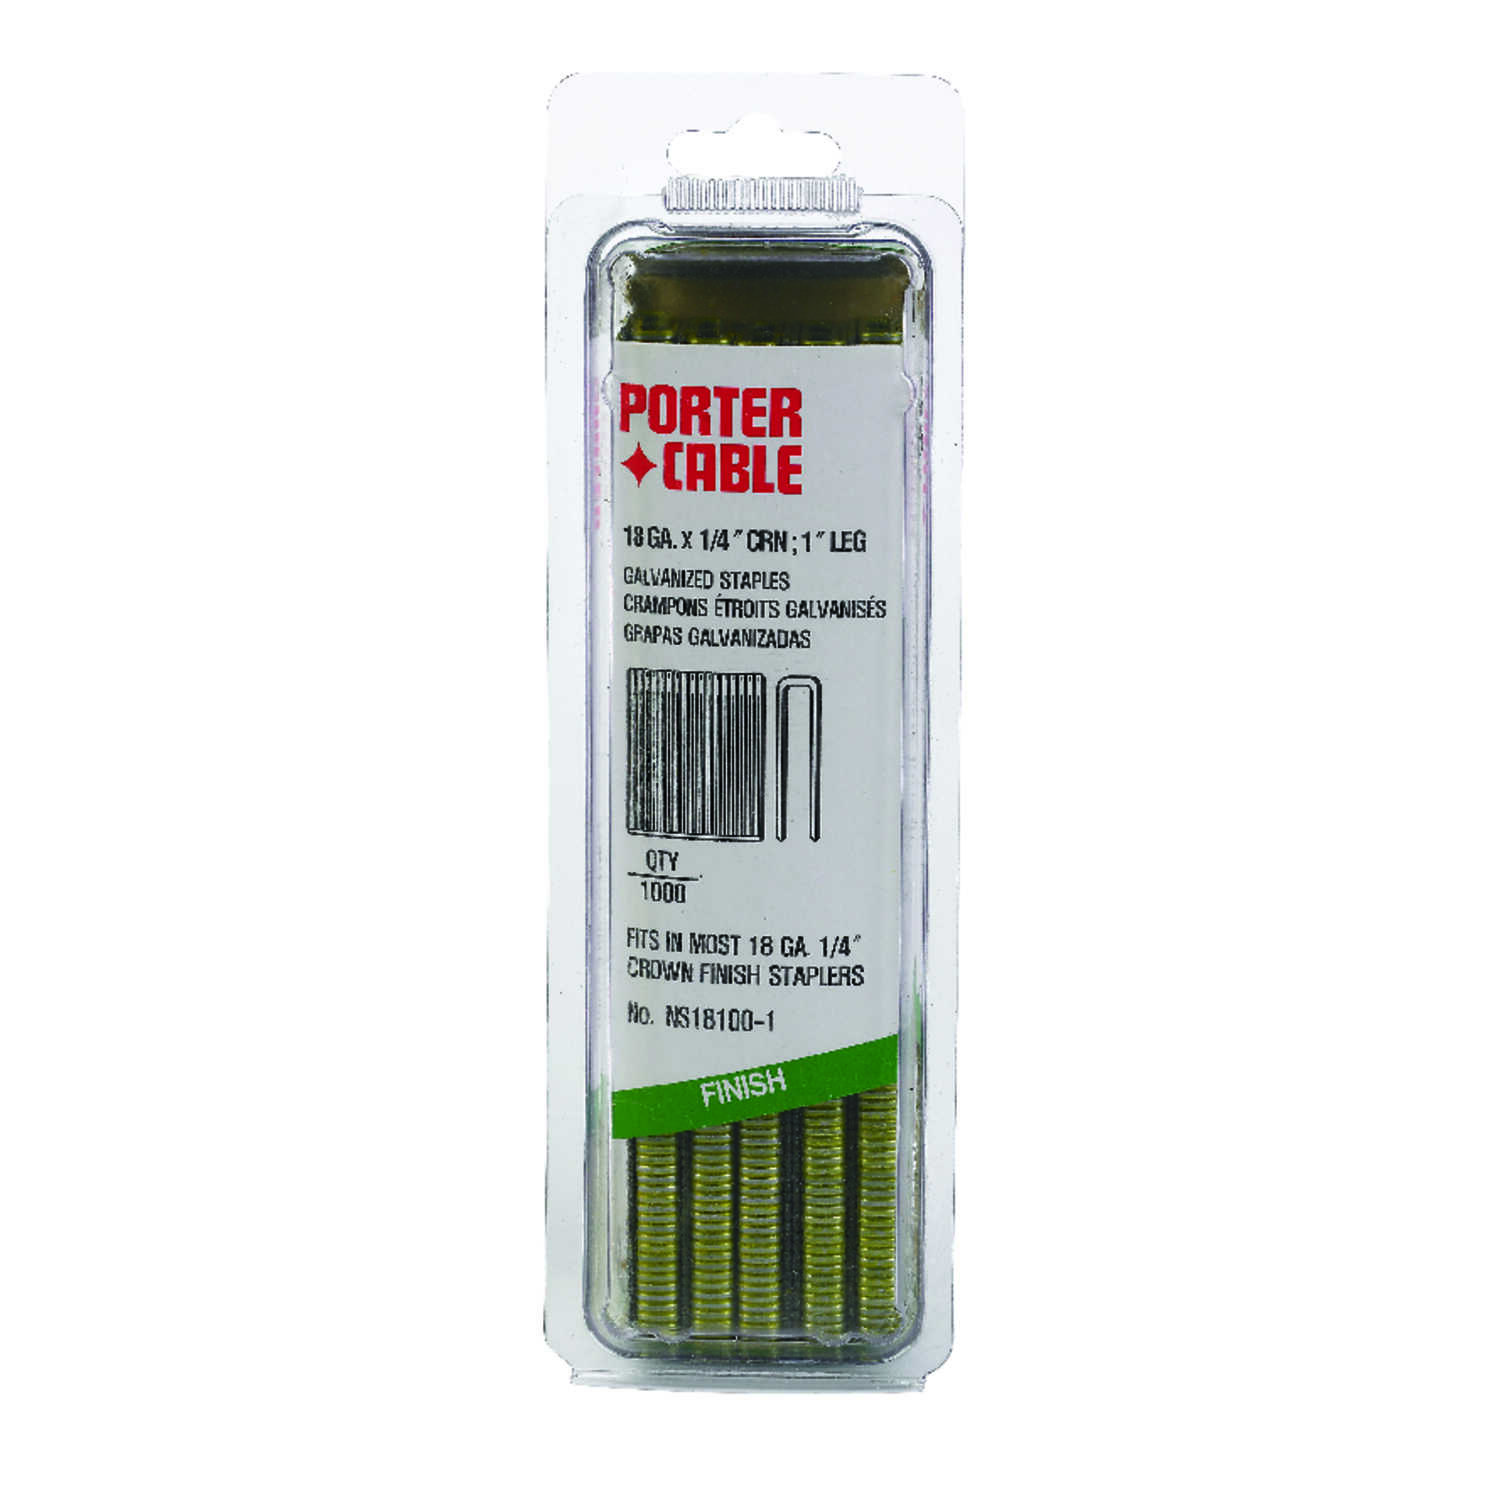 Porter Cable  1 in. L x 1/4 in. W Galvanized Steel  Narrow Crown  Staples  18 Ga. 1000 EA